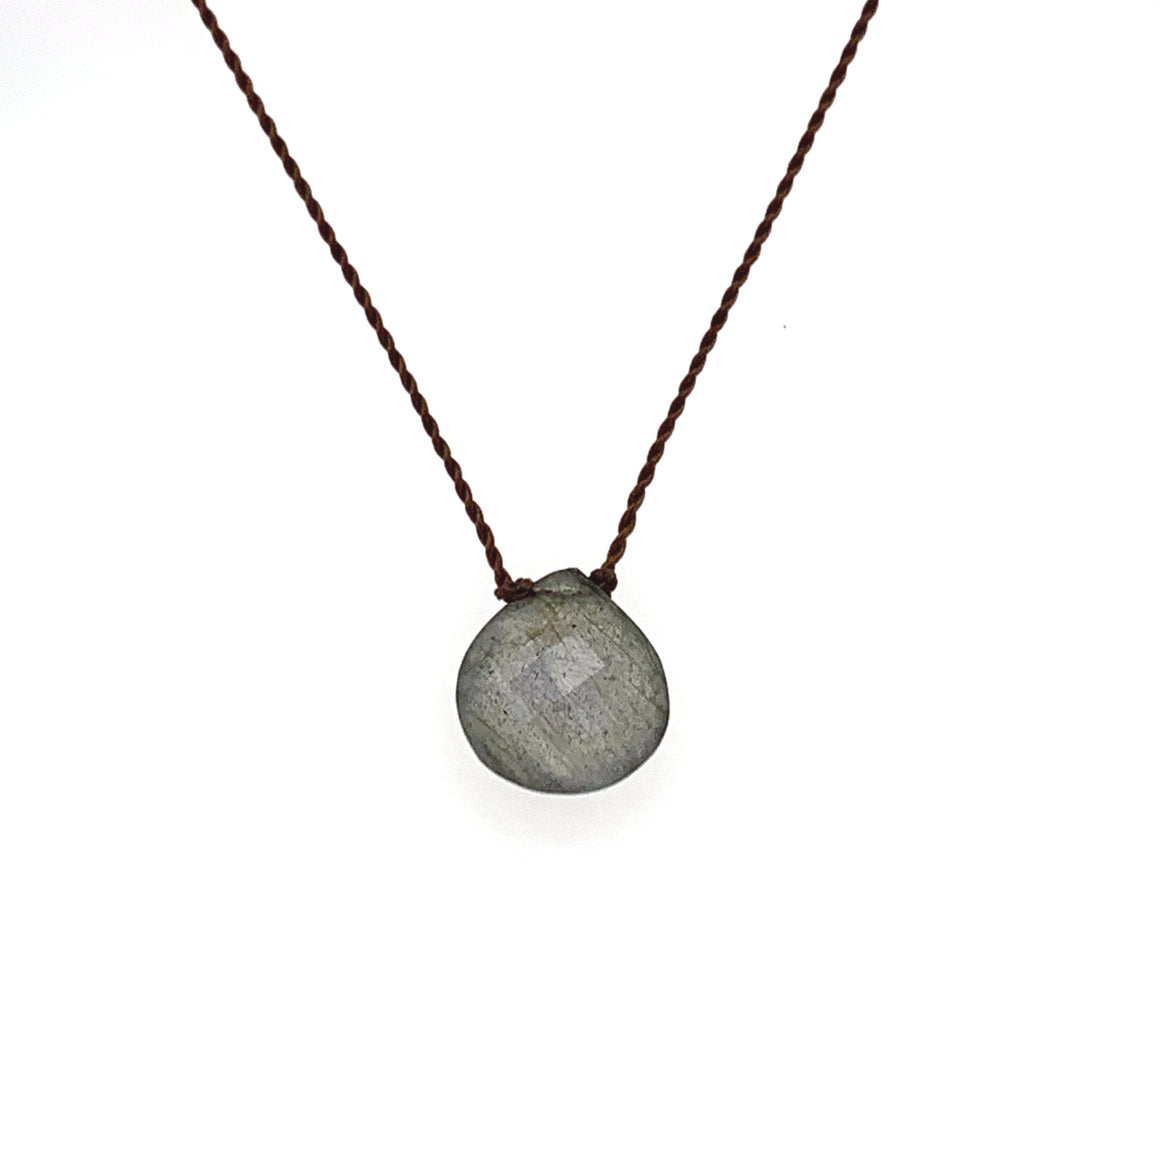 Faceted Droplet Necklace - Labradorite